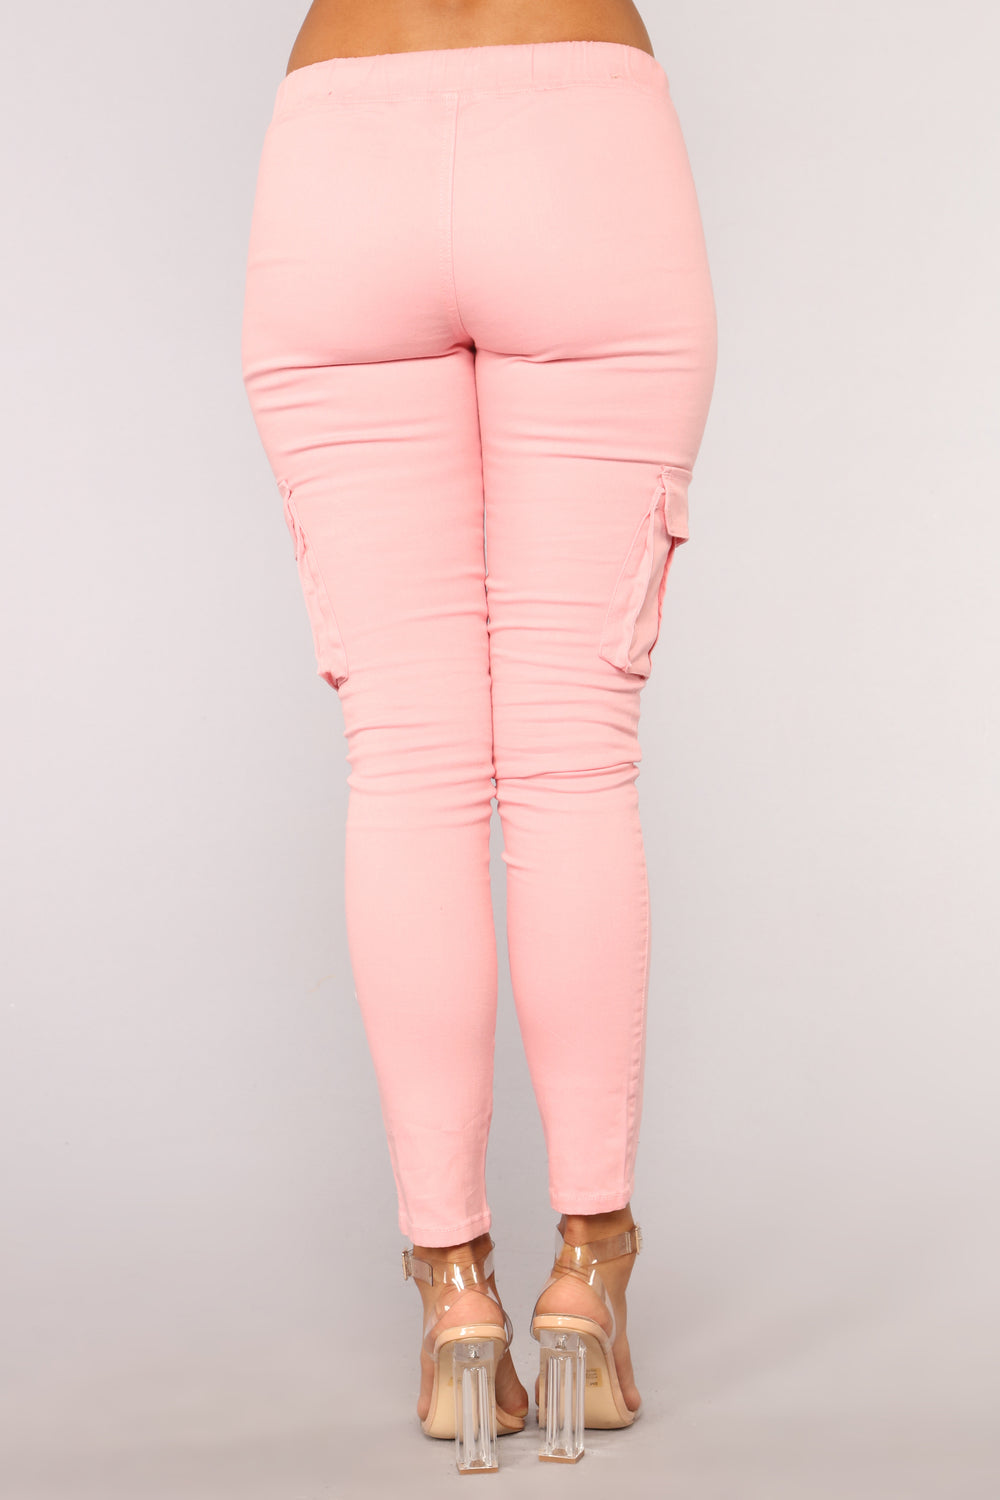 Field Trip Pants - Peach